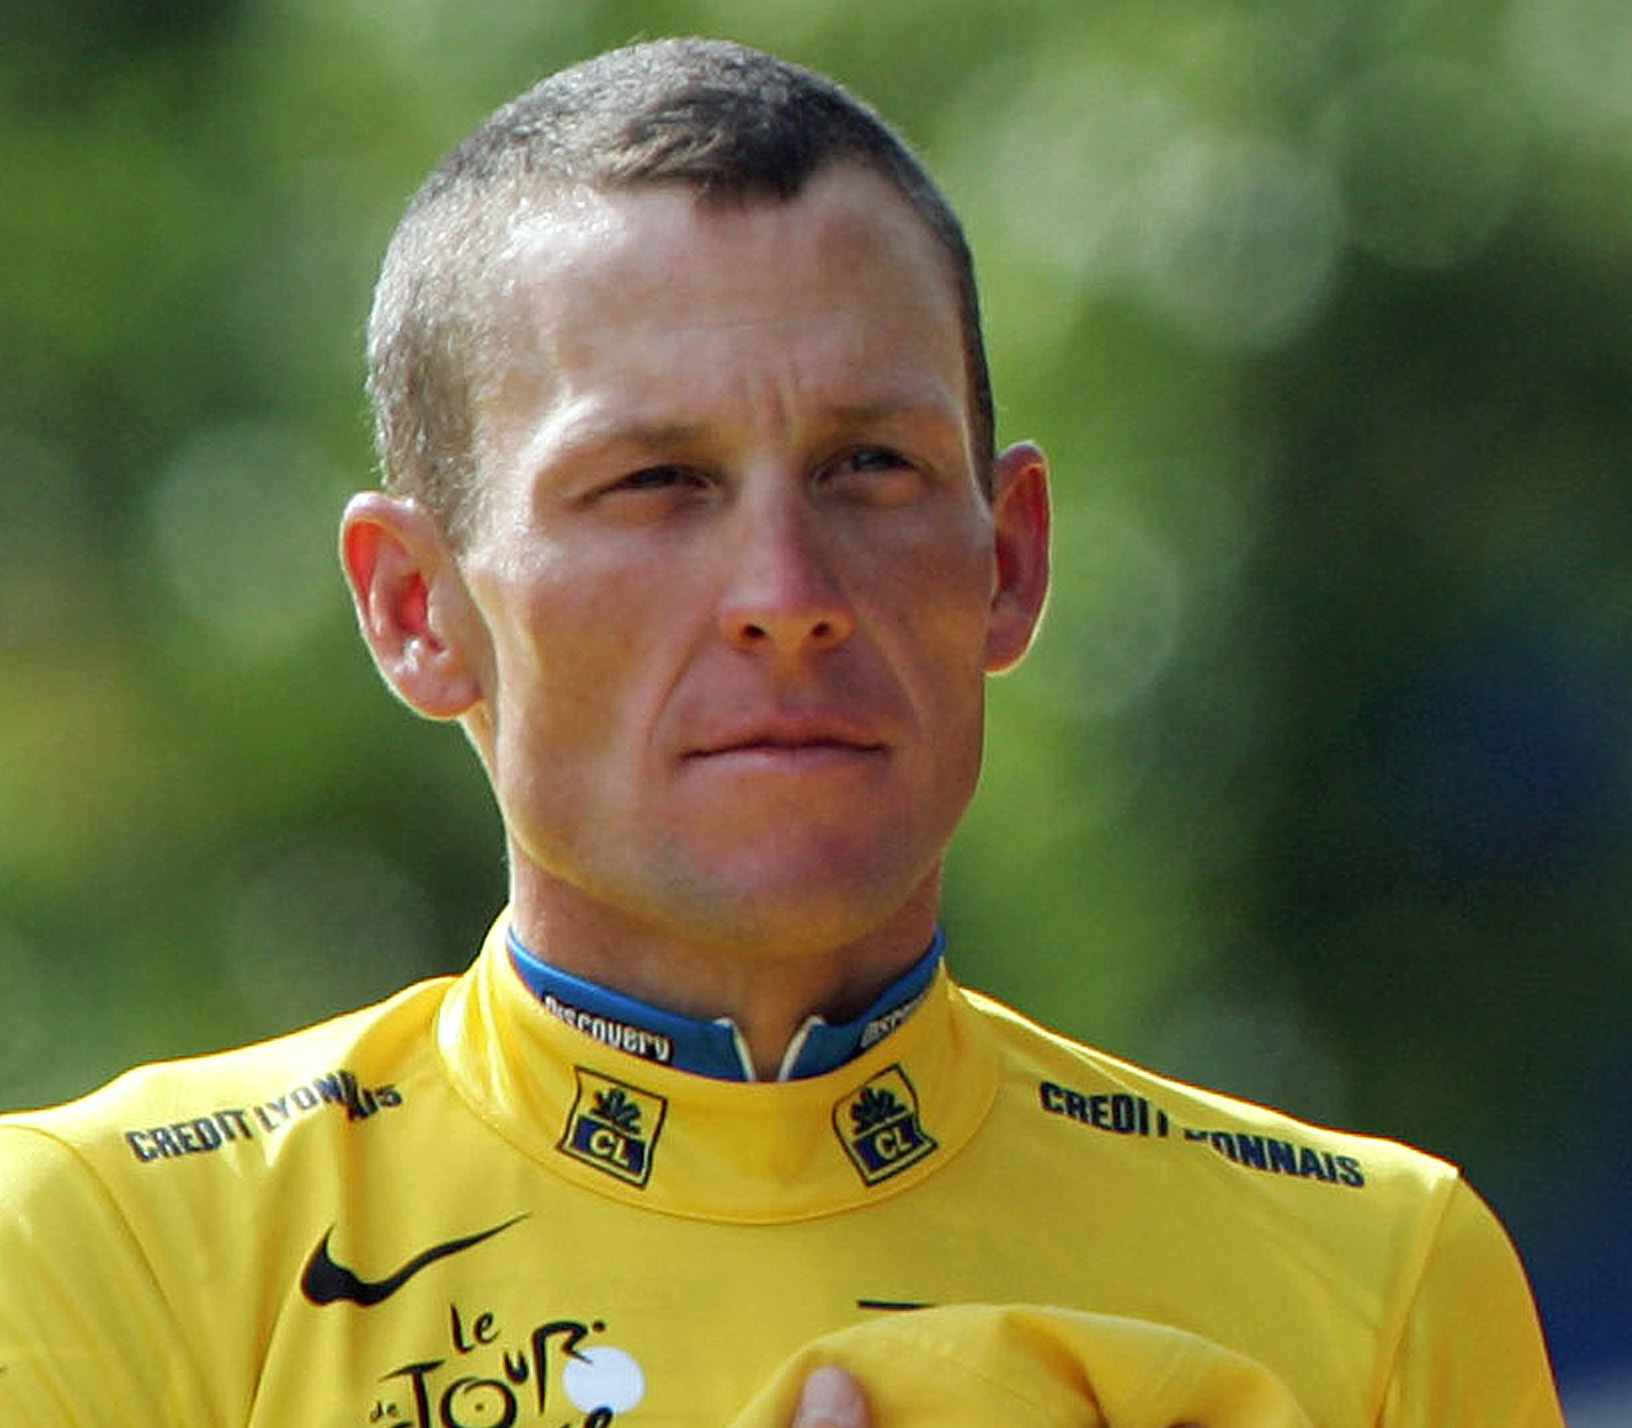 lance armstrong перевод текстаlance armstrong перевод текста, lance armstrong bike, lance armstrong 2016, lance armstrong was born in plano, lance armstrong wiki, lance armstrong foundation, lance armstrong 2017, lance armstrong won the tour de france, lance armstrong discovery, lance armstrong movie, lance armstrong 1999, lance armstrong facebook, lance armstrong strava, lance armstrong book, lance armstrong climbing, lance armstrong biography, lance armstrong nike, lance armstrong autograph, lance armstrong short biography, lance armstrong is back